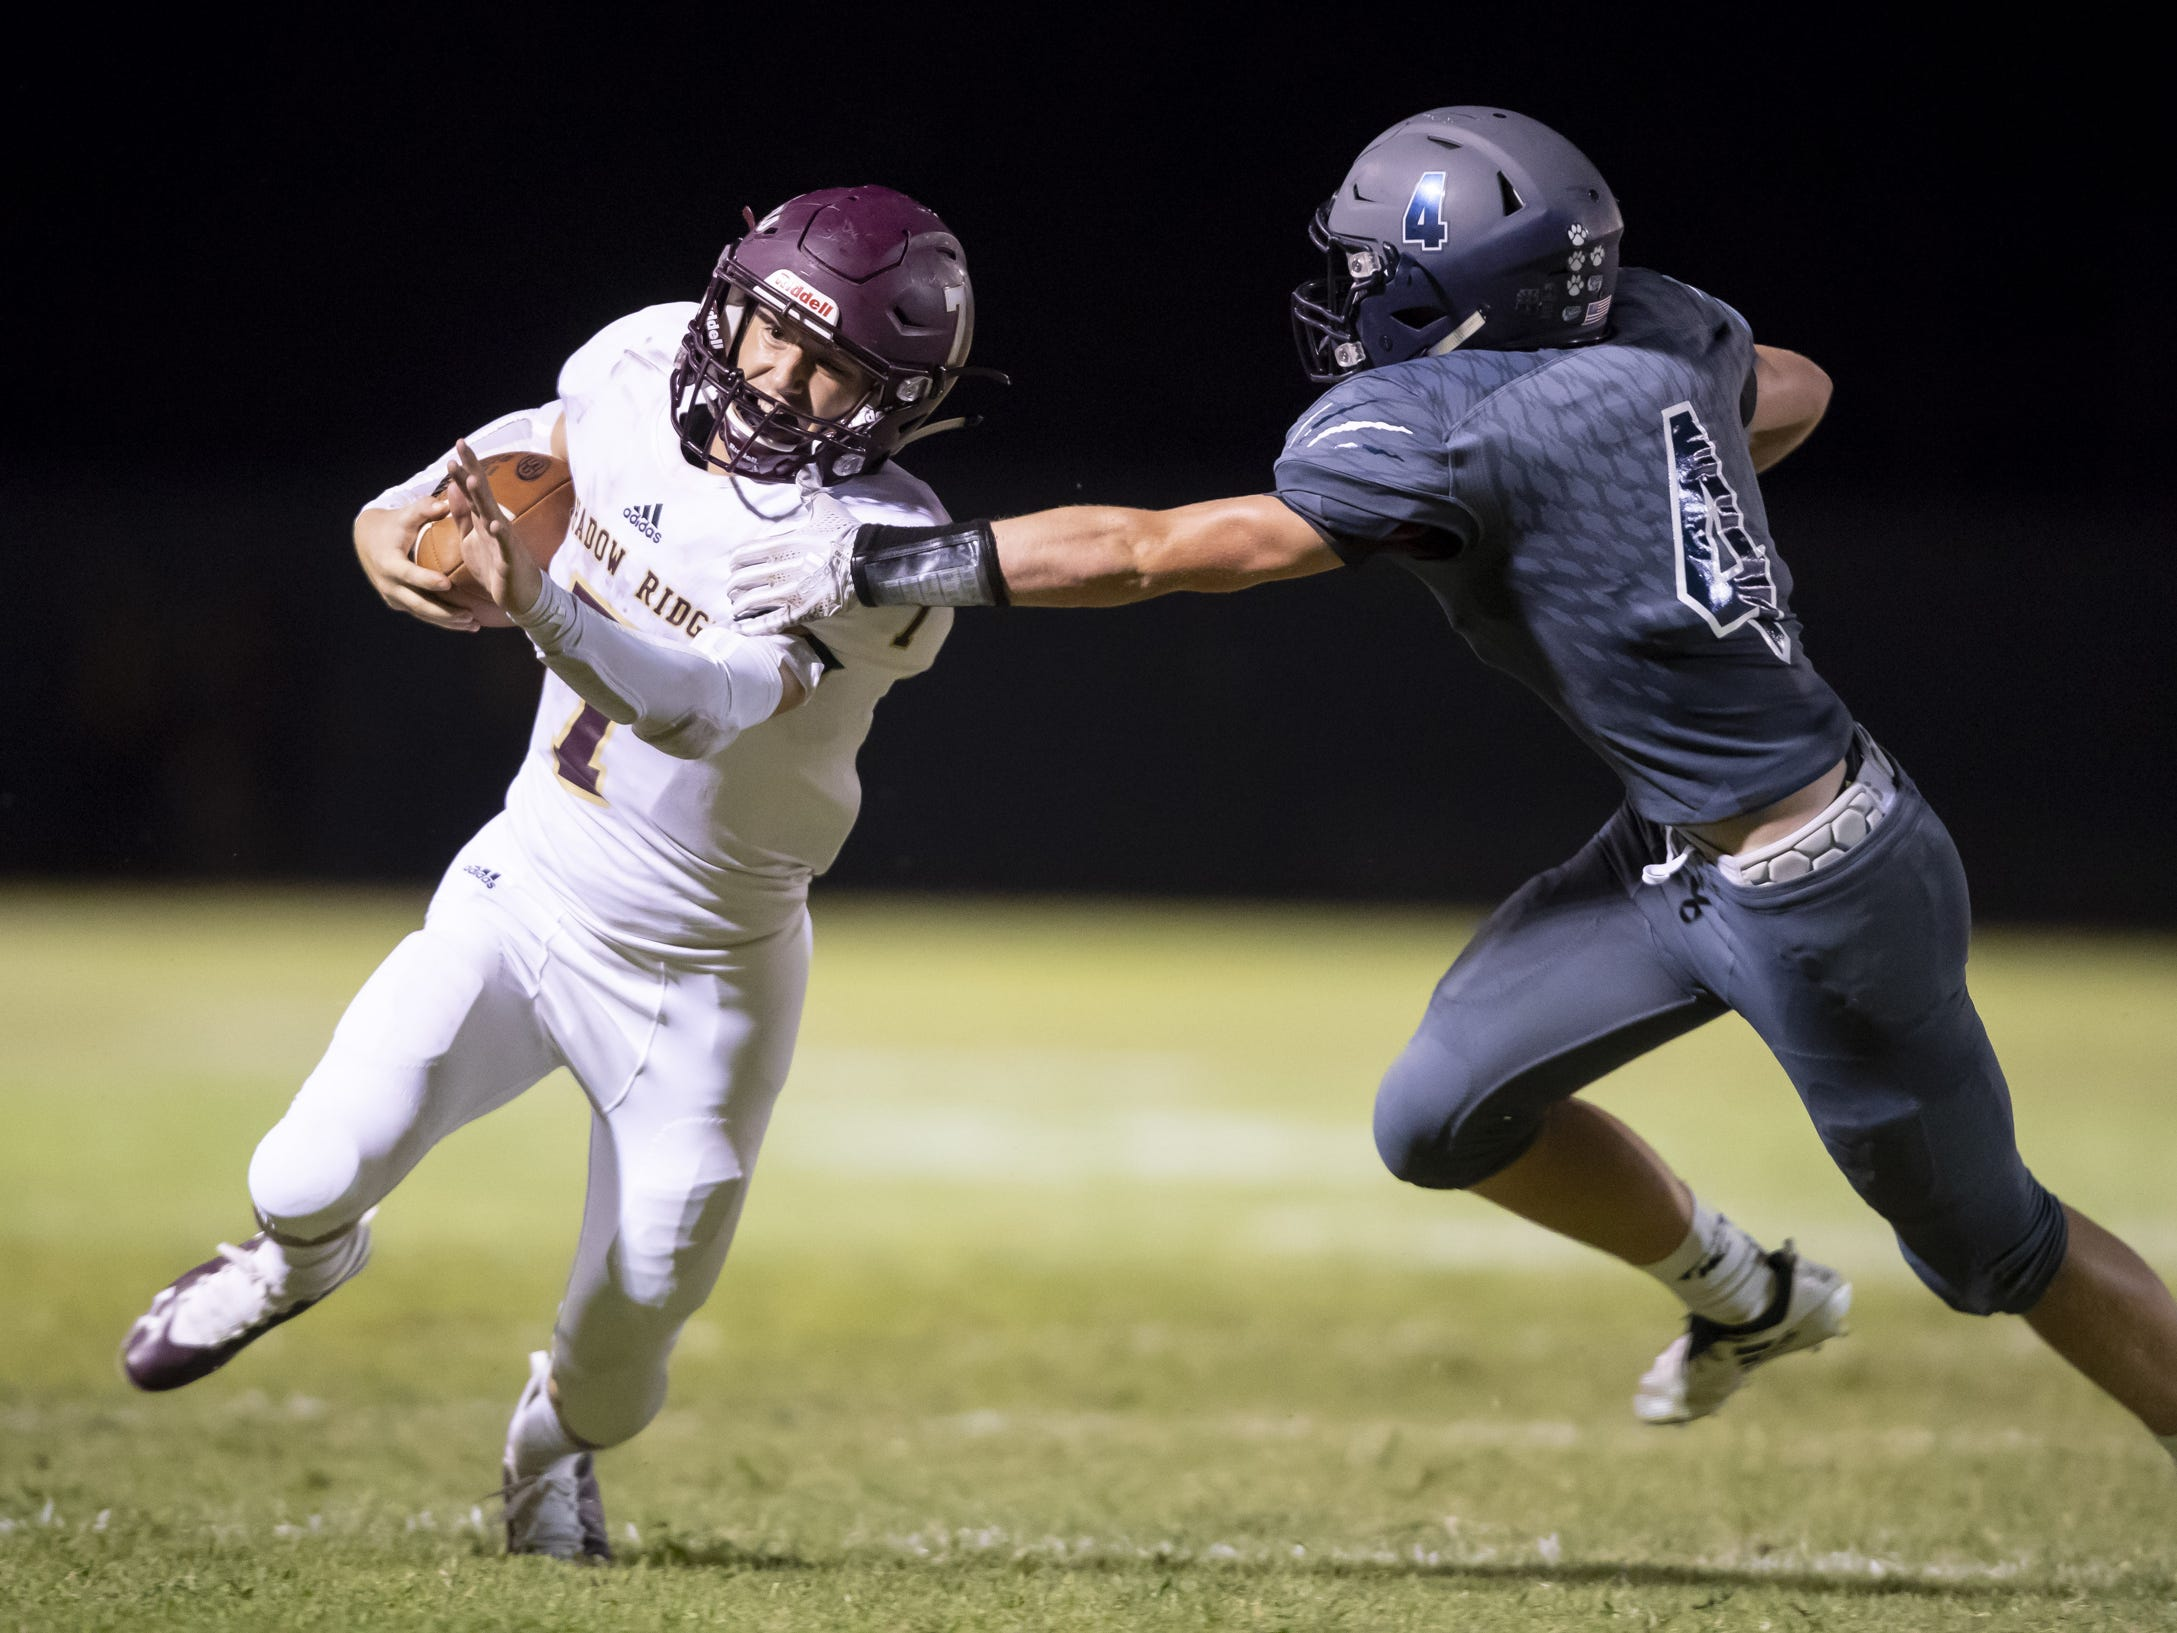 Junior running back Michael Clark (7) of the Shadow Ridge Stallions runs the ball against junior defensive back Jonathan Hagestad (4) of the Willow Canyon Wildcats at Willow Canyon High School on Friday, September 7, 2018 in Surprise, Arizona. #azhsfb